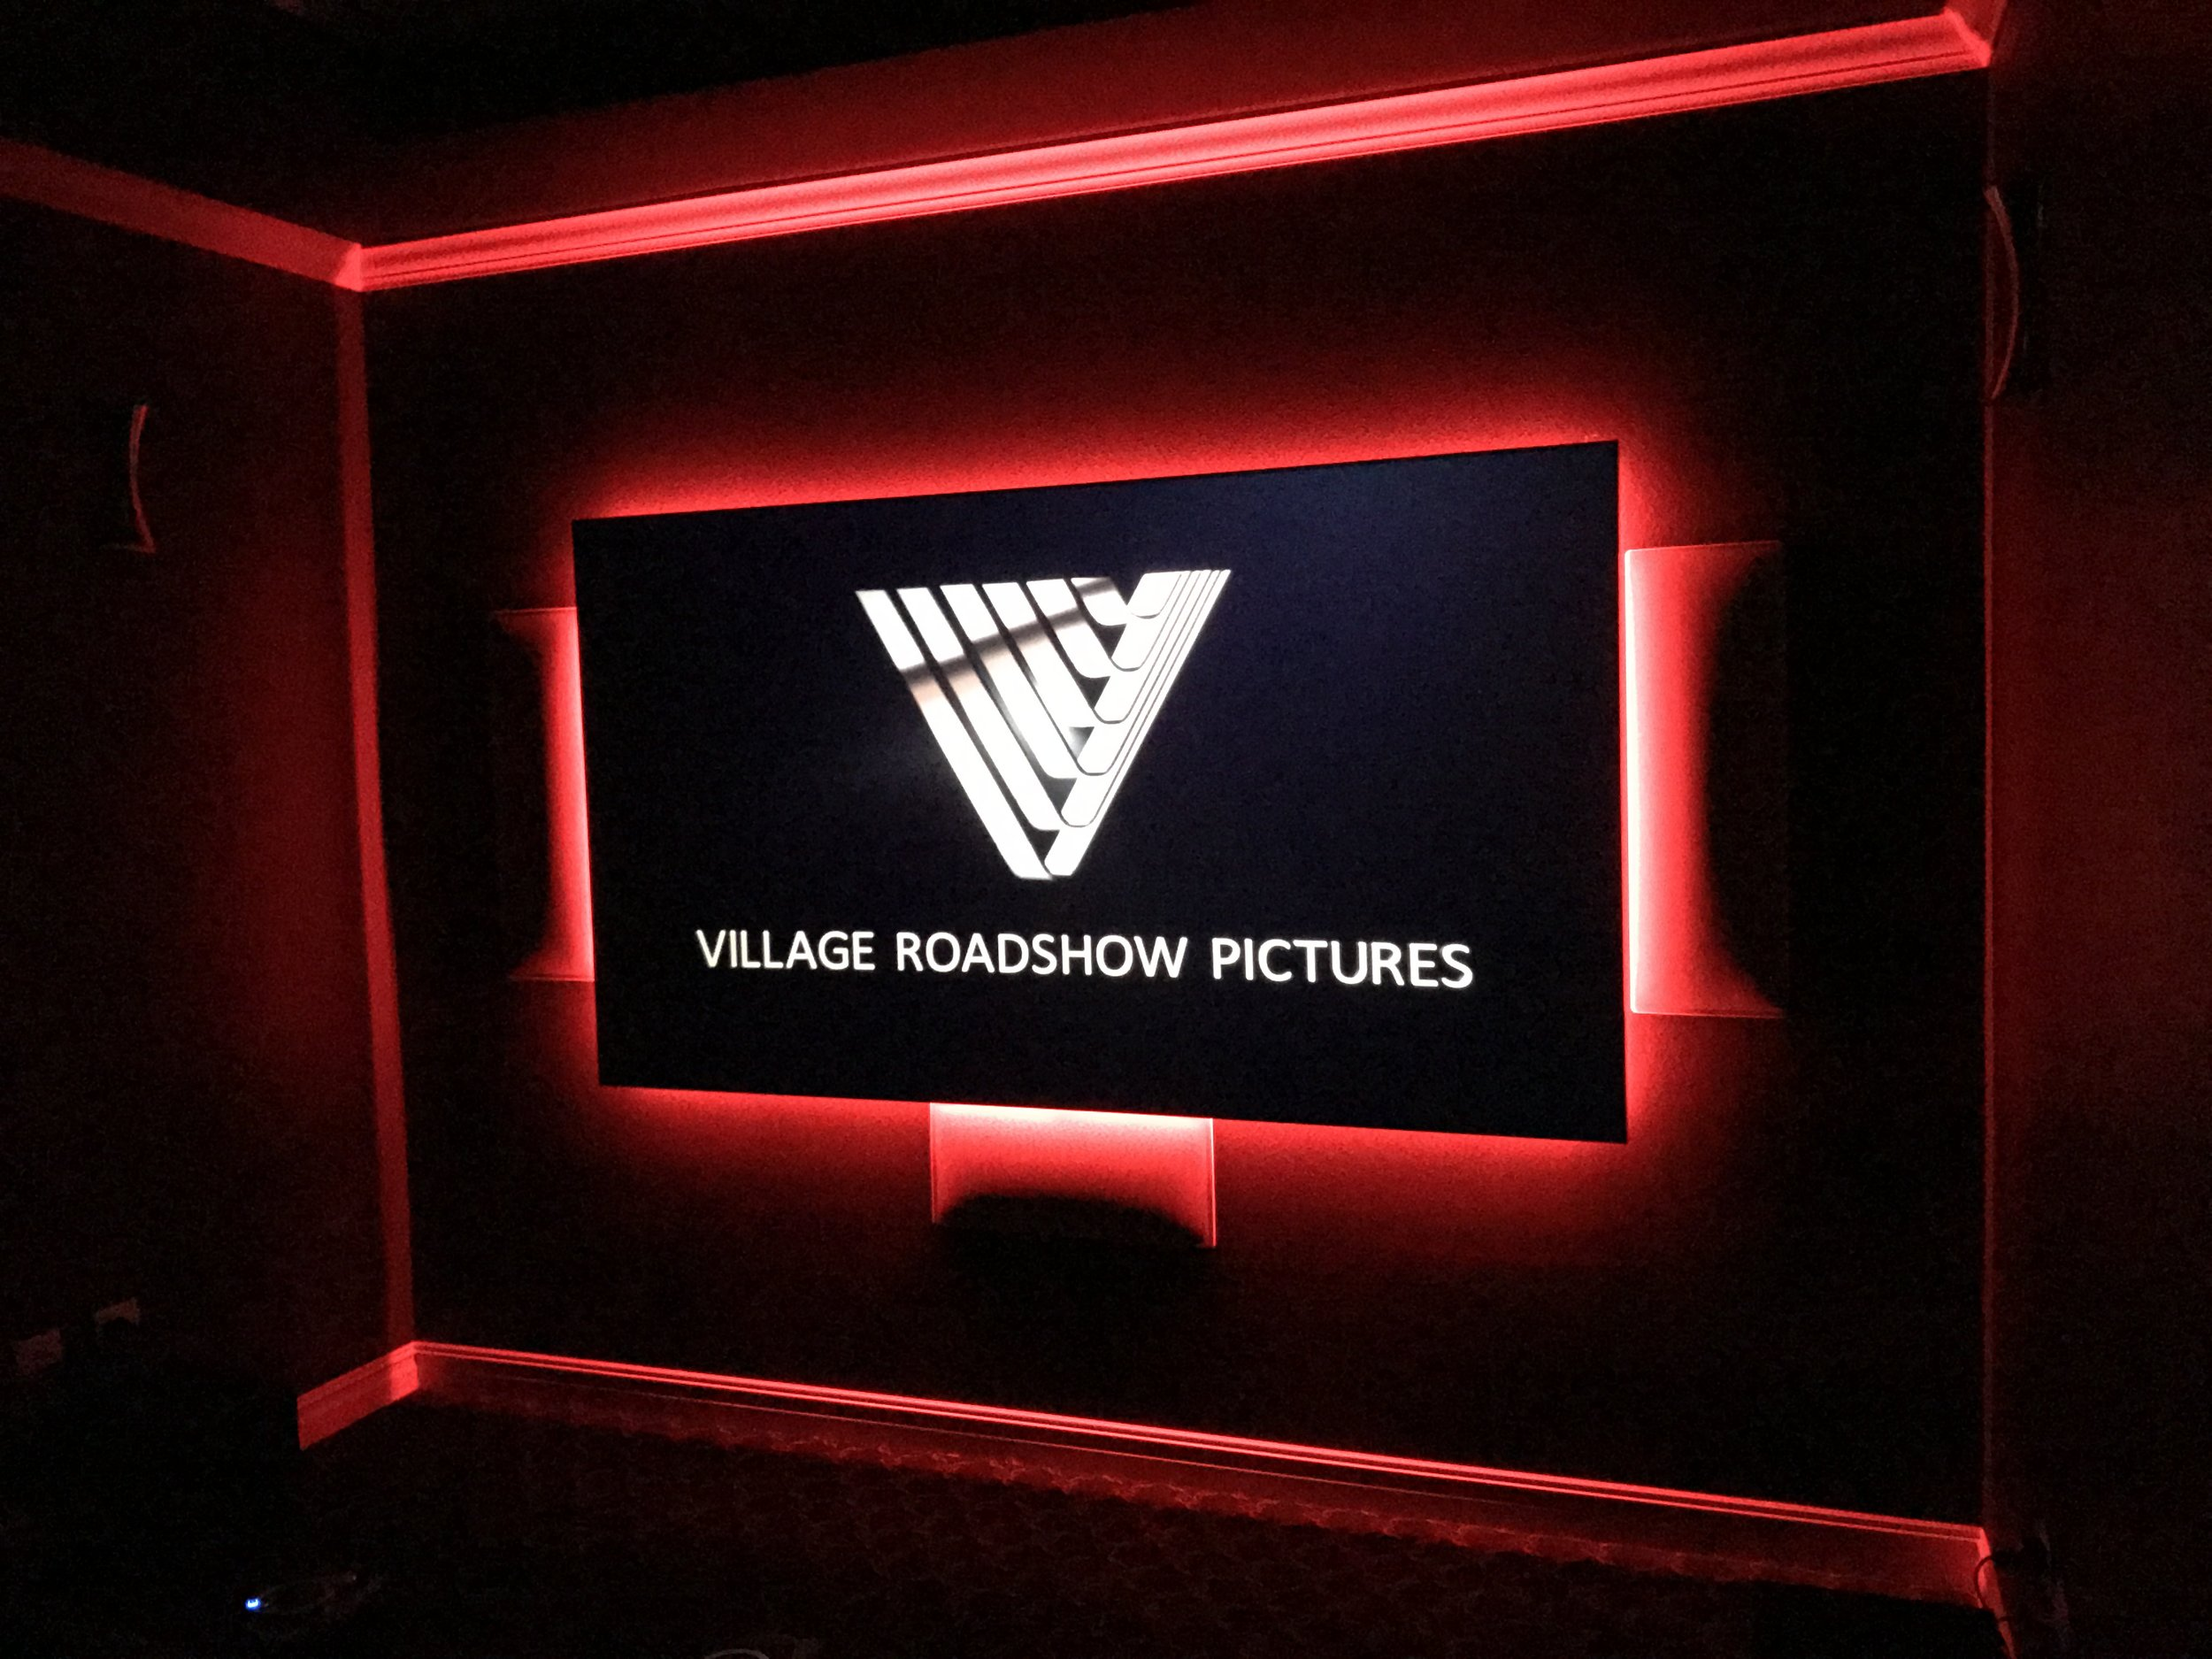 """120"""" ambient light rejecting screen, 4K projector, 7.2 surround sound, custom equipment rack and integrated control system."""